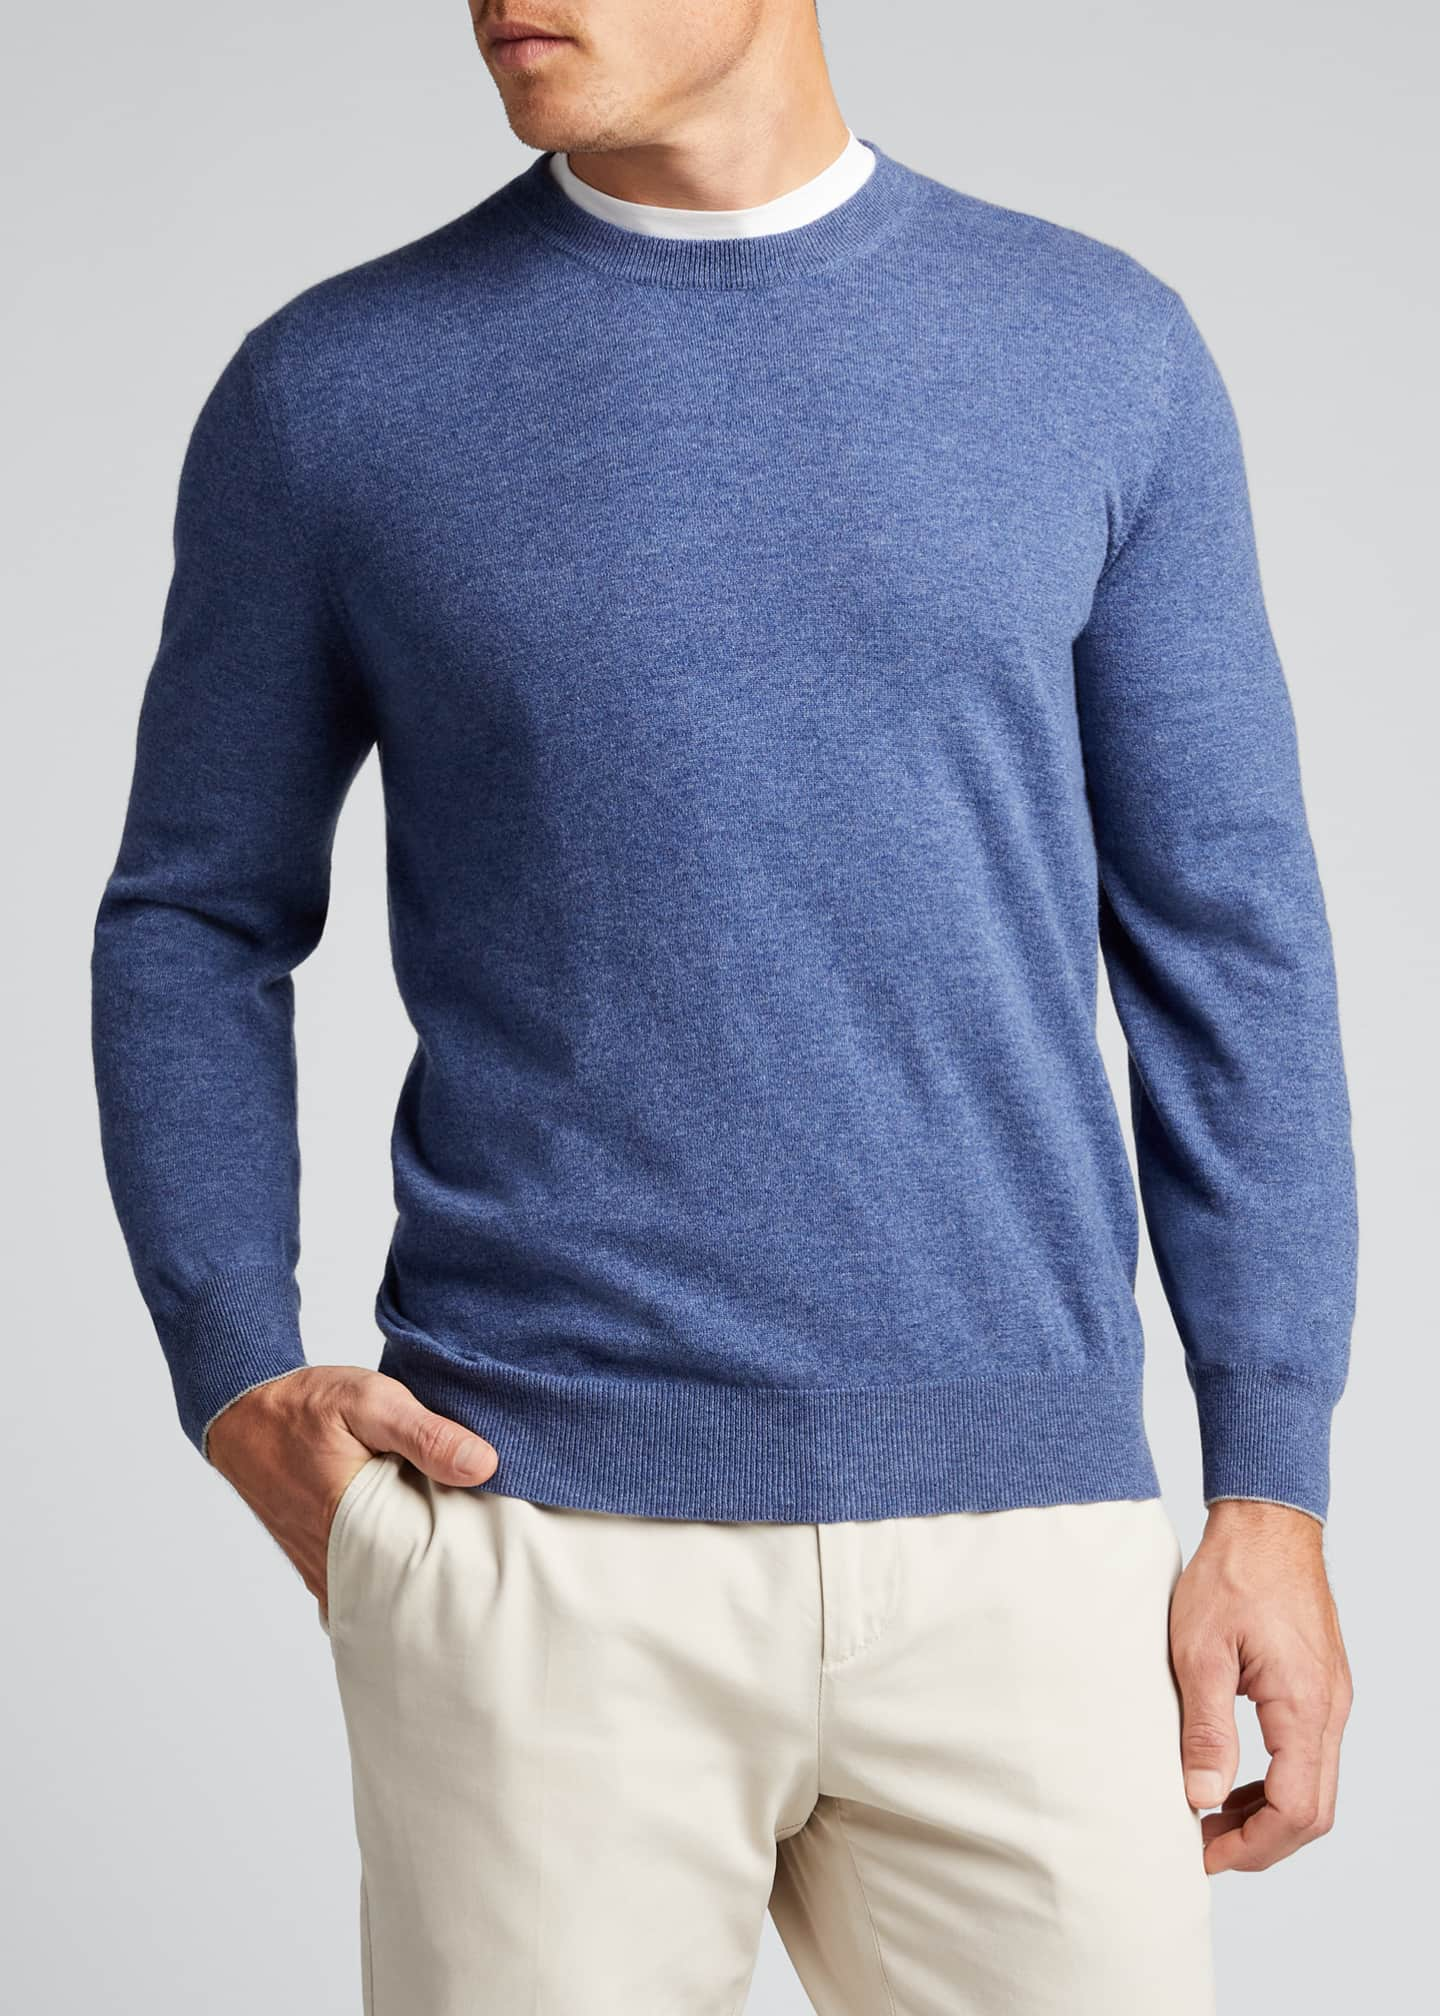 Image 3 of 5: Men's 2-Ply Cashmere Crew Sweater